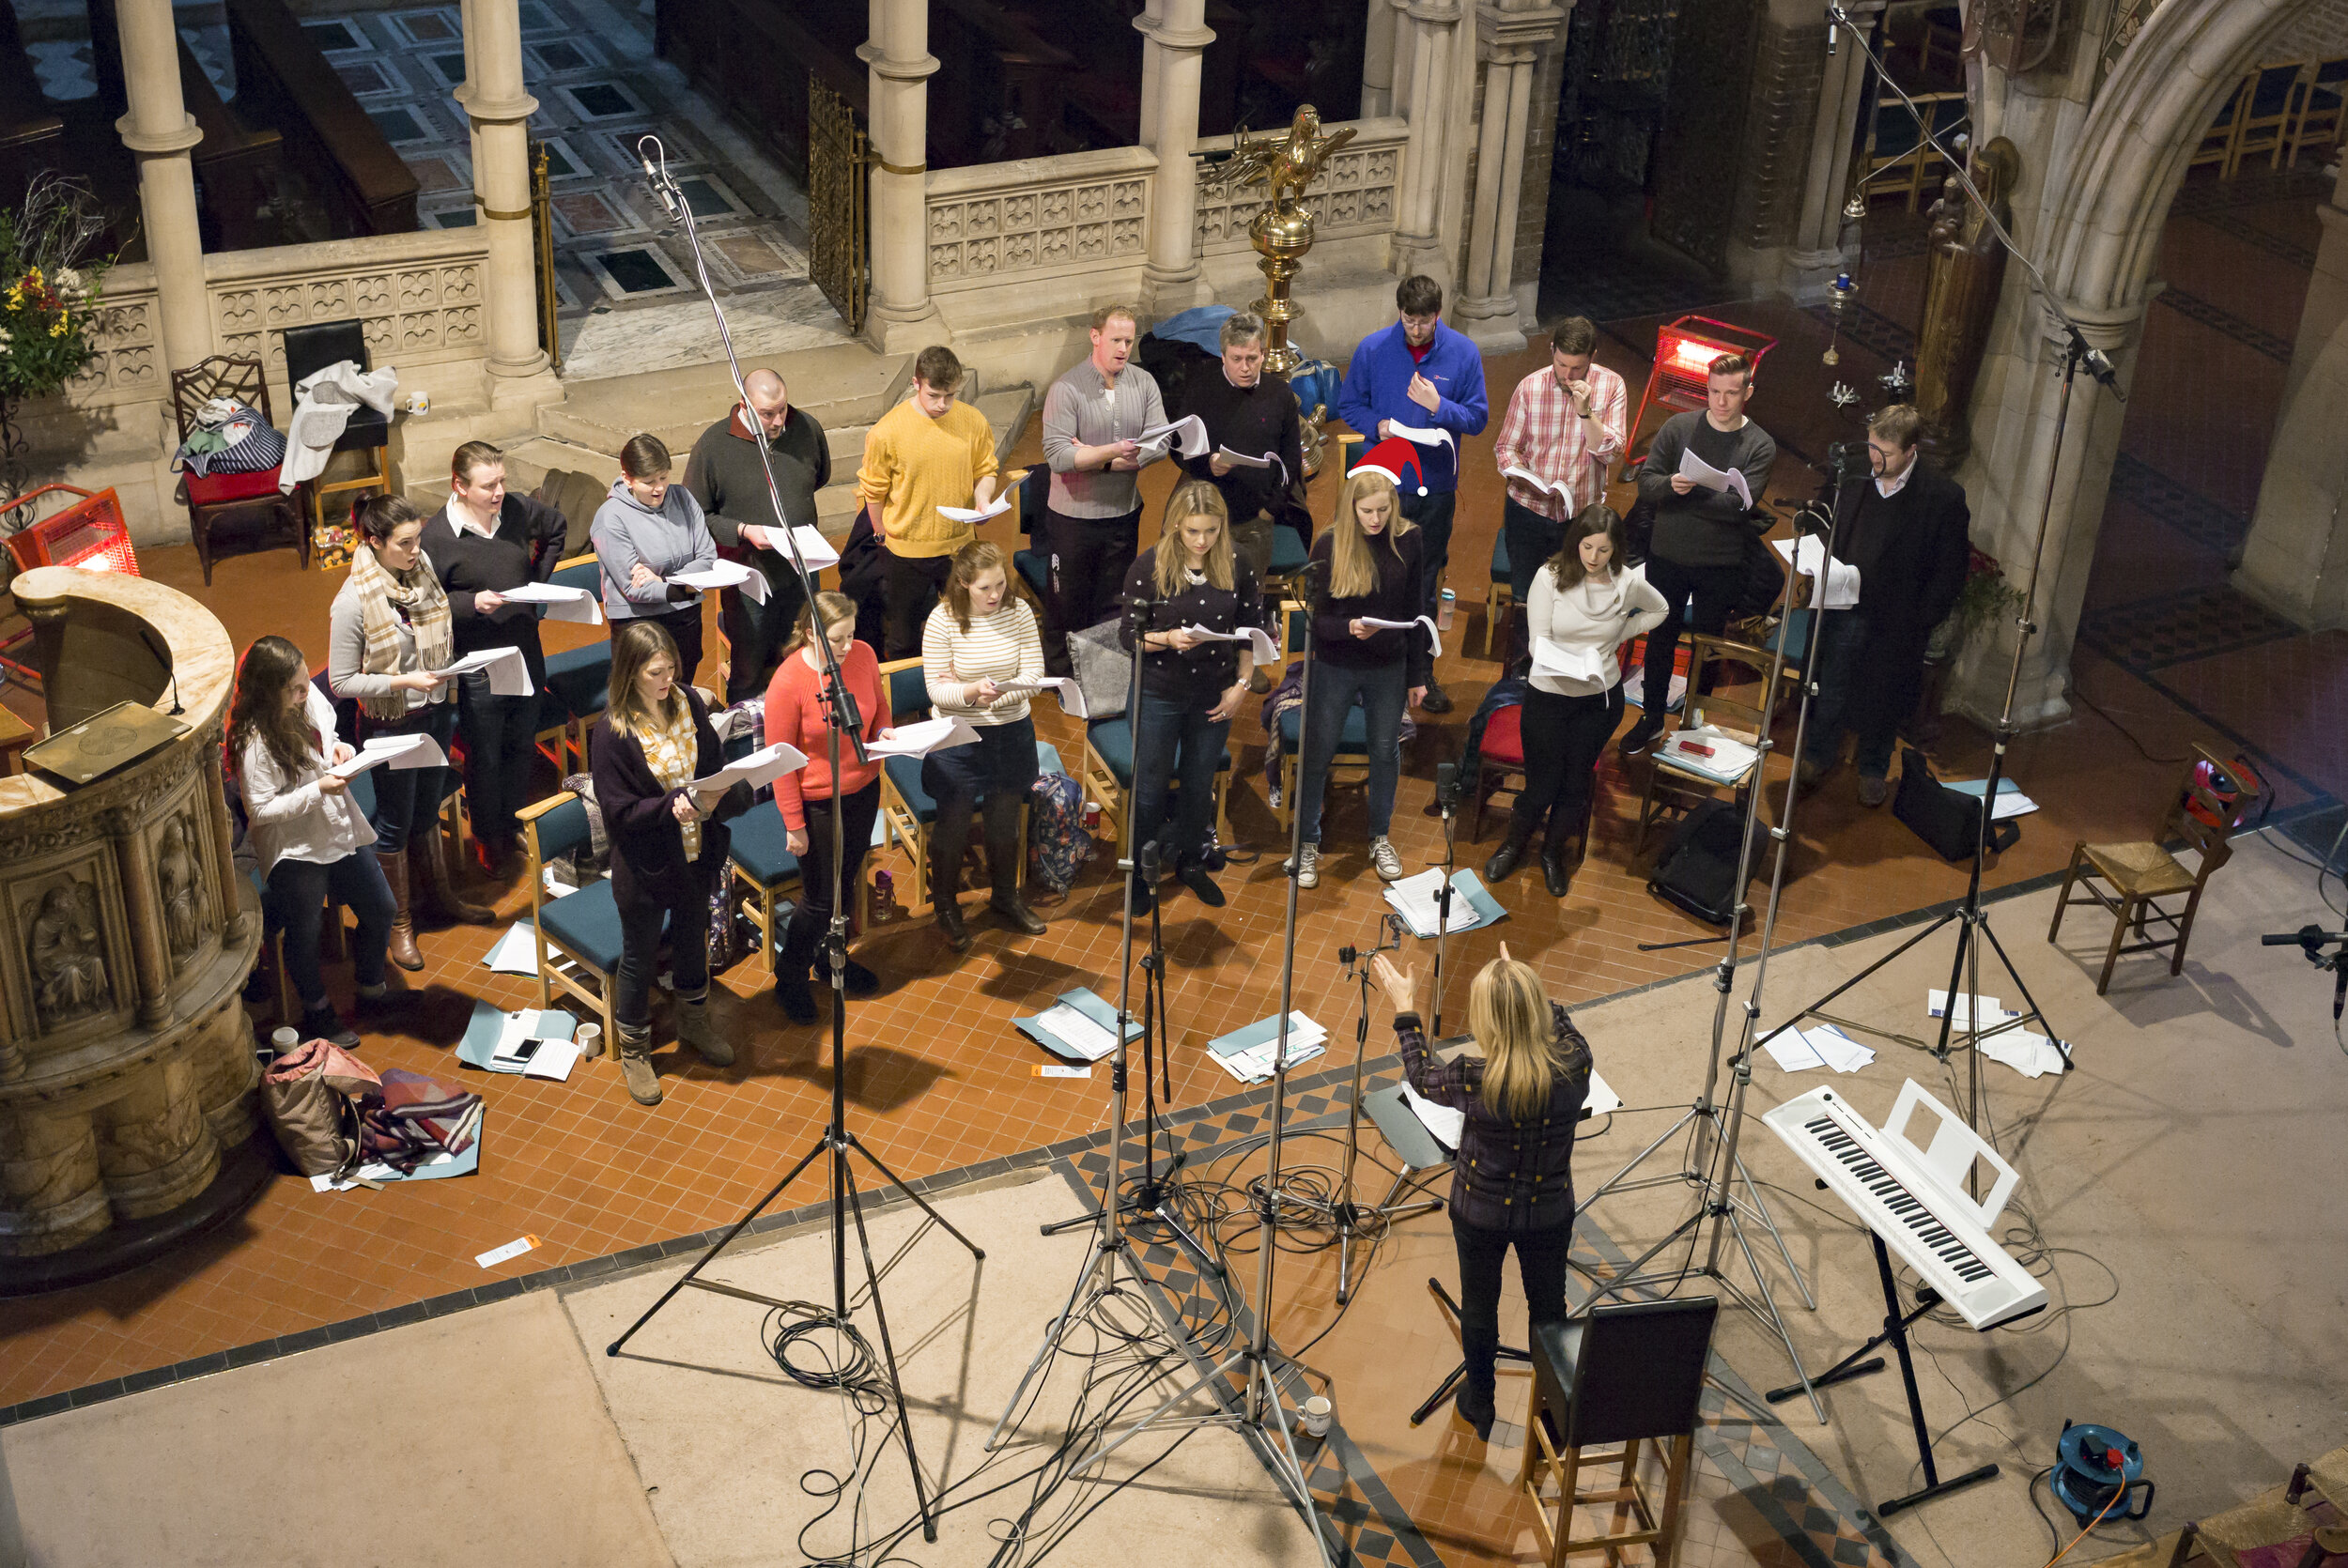 Composer Criteria - ORA Singers is looking for aspiring and/or professional composers who want to enhance their portfolio with a world-class recording of their work. Submit your entries to us before the 18th of November for your chance to work with an award-winning ensemble, led by Suzi Digby OBE.- Composers must be resident in the UK- Composers can be of any age, nationality or experience- Under 18's must have consent from their parent/guardian before submitting to the competition- Piece must be Christmas or Winter themed- Limited to one entry per composer- Attendance at the rehearsal of your piece is optional and ability to do so will not disqualify you from entering or being selected.